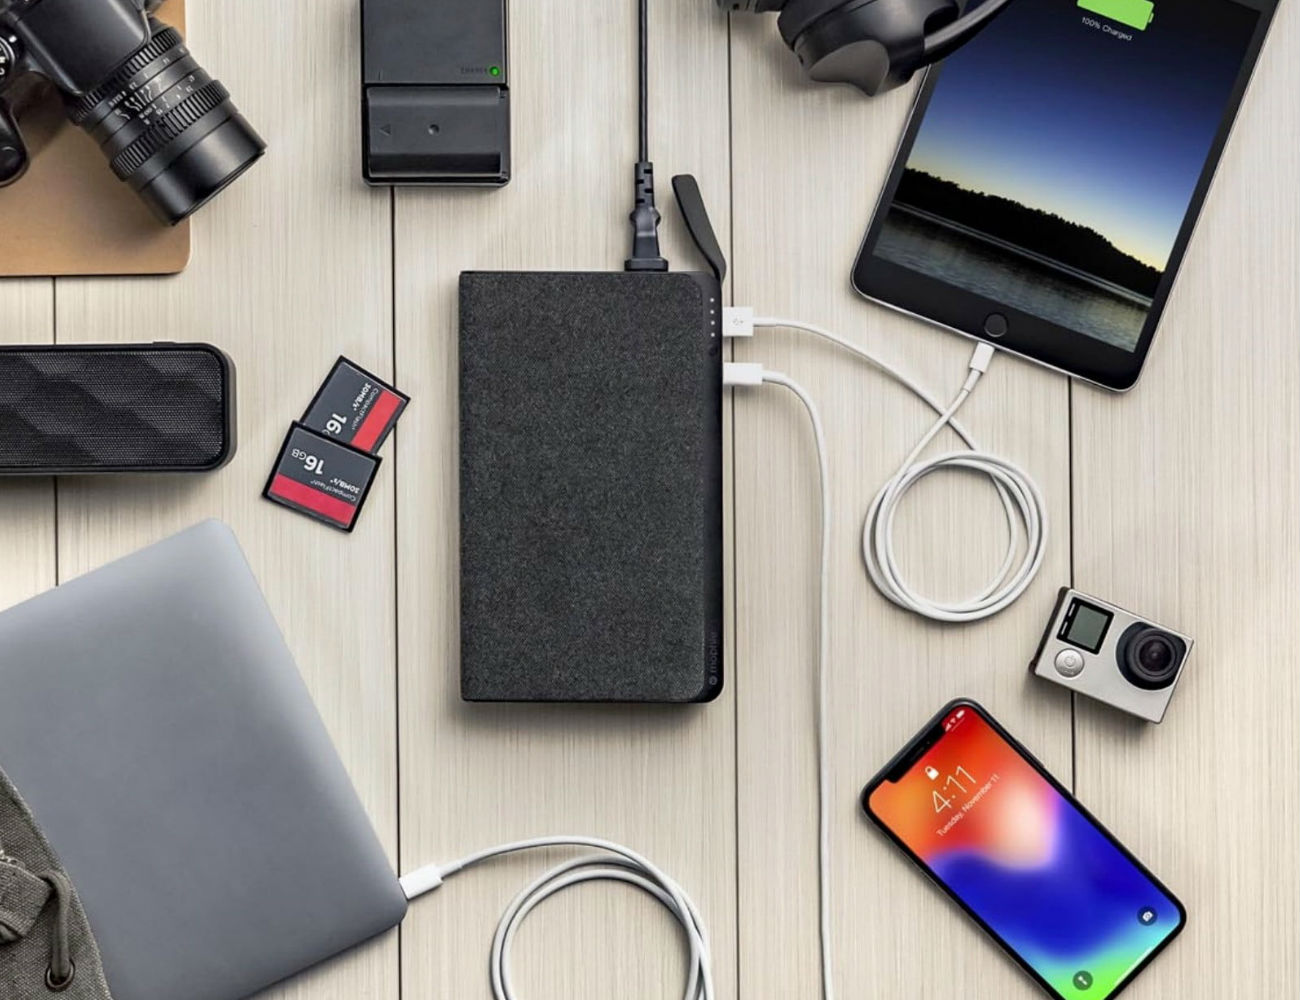 mophie Powerstation AC Universal Battery